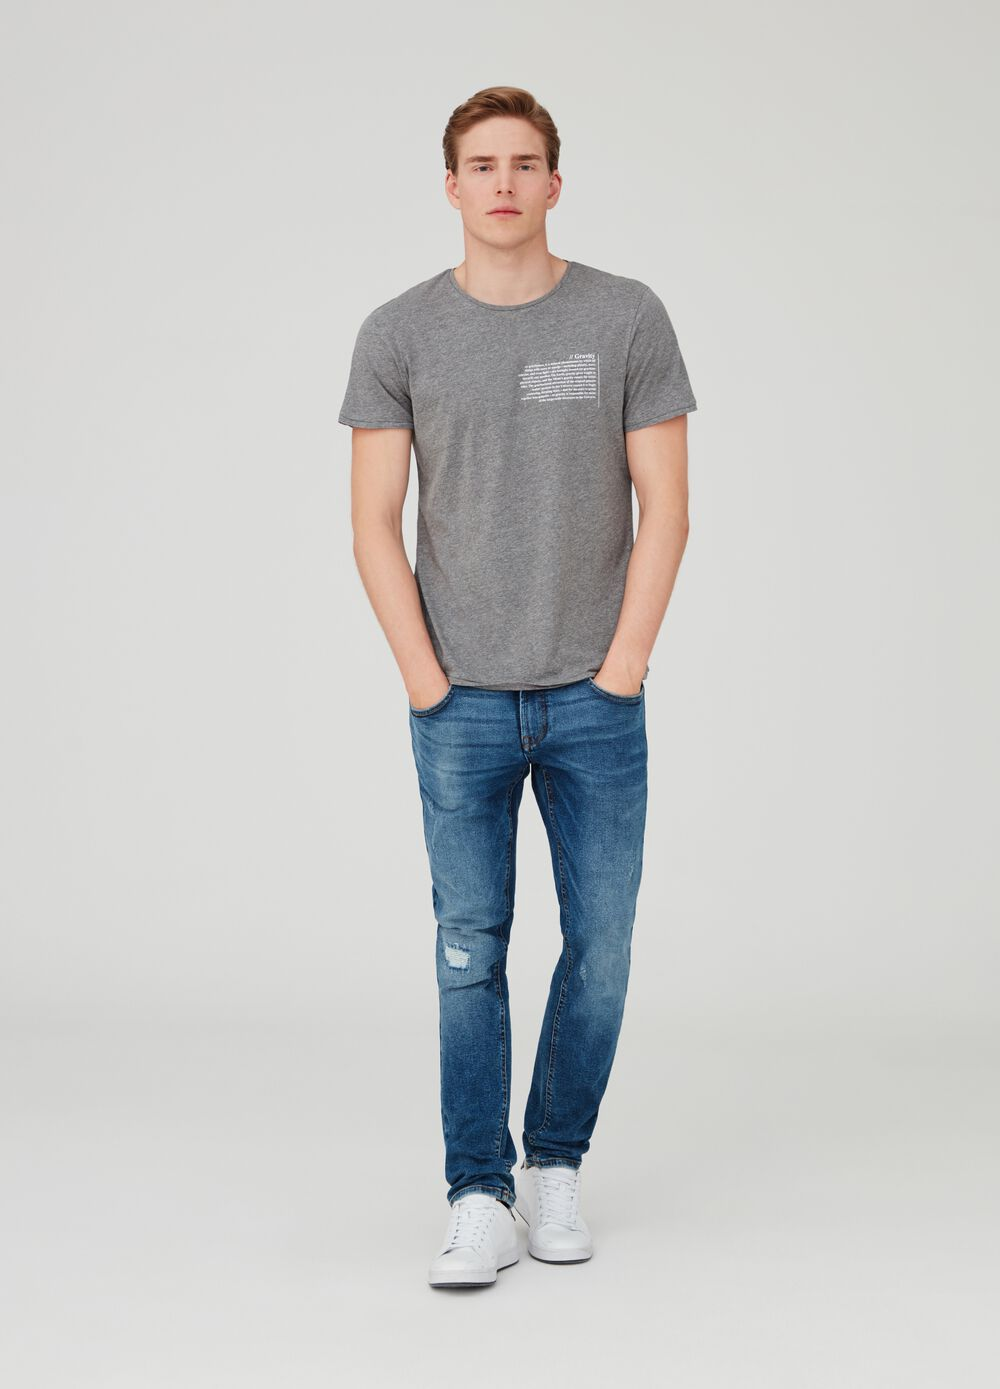 Mélange T-shirt with lettering print on the chest